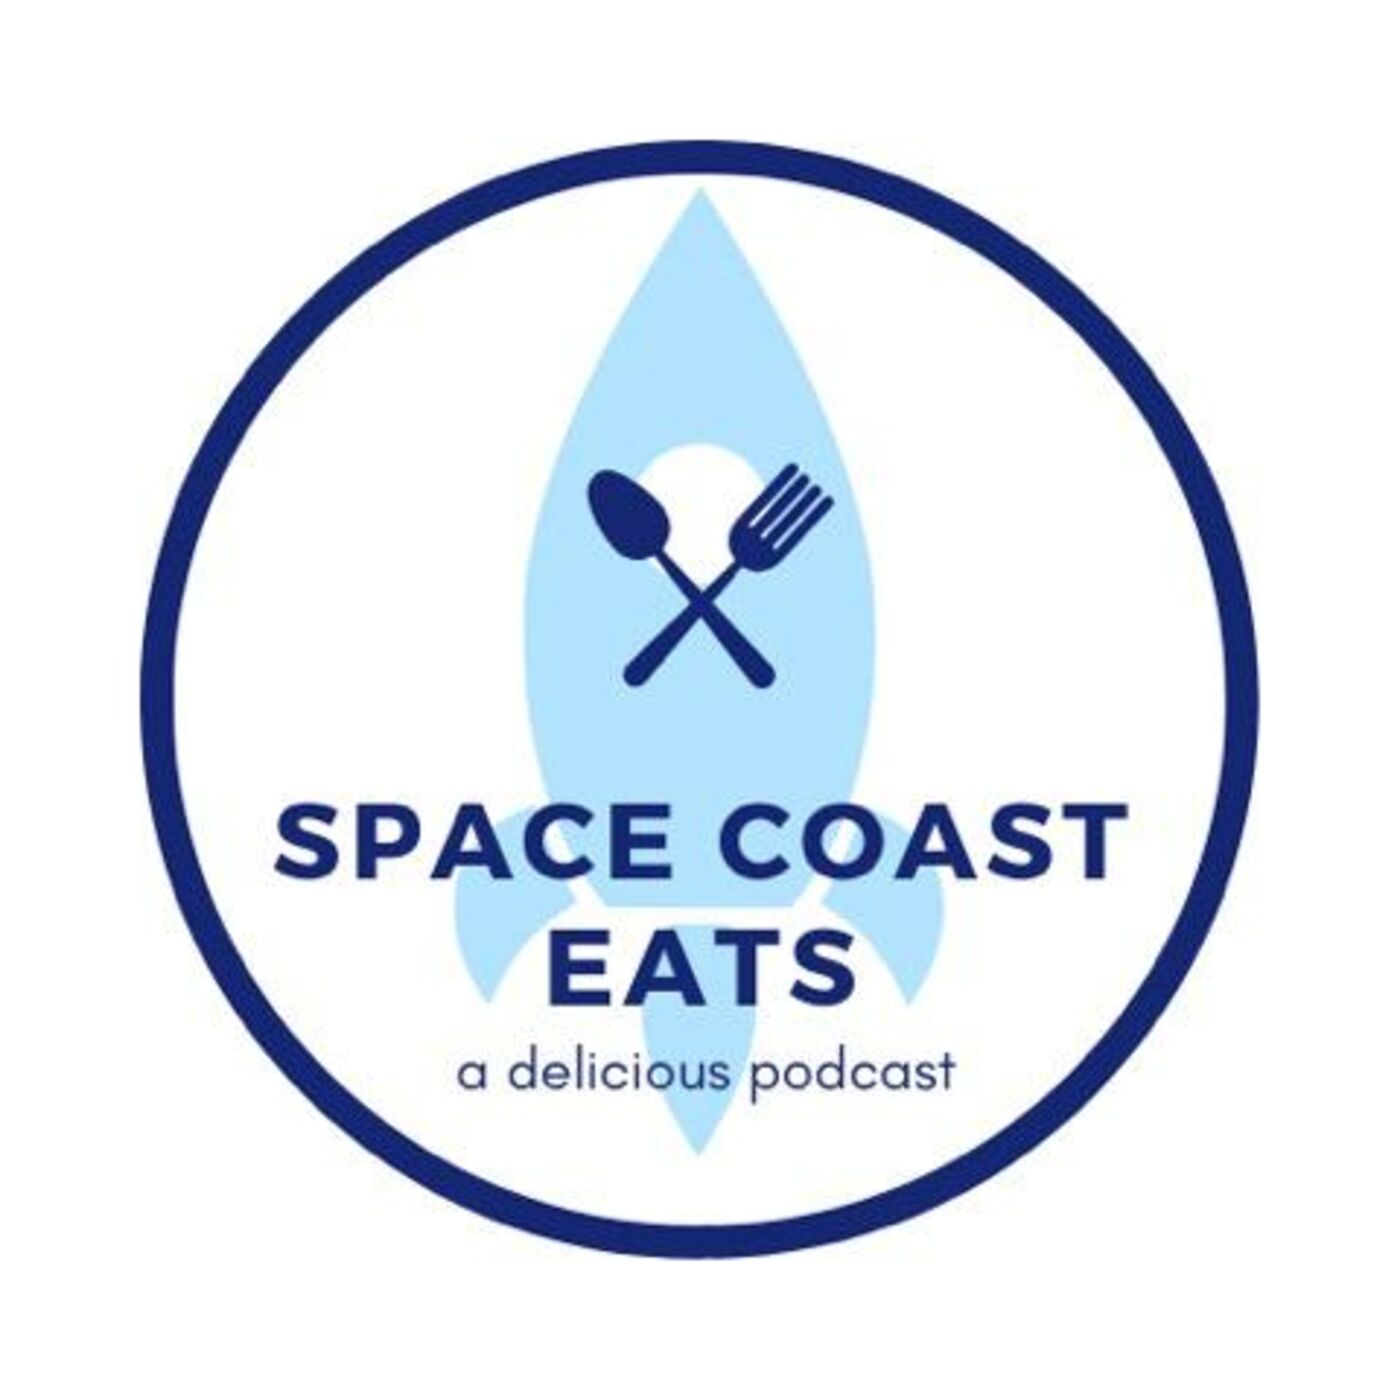 Space Coast Eats - It's a Food Festival in 2021, Let's Chat Deets!